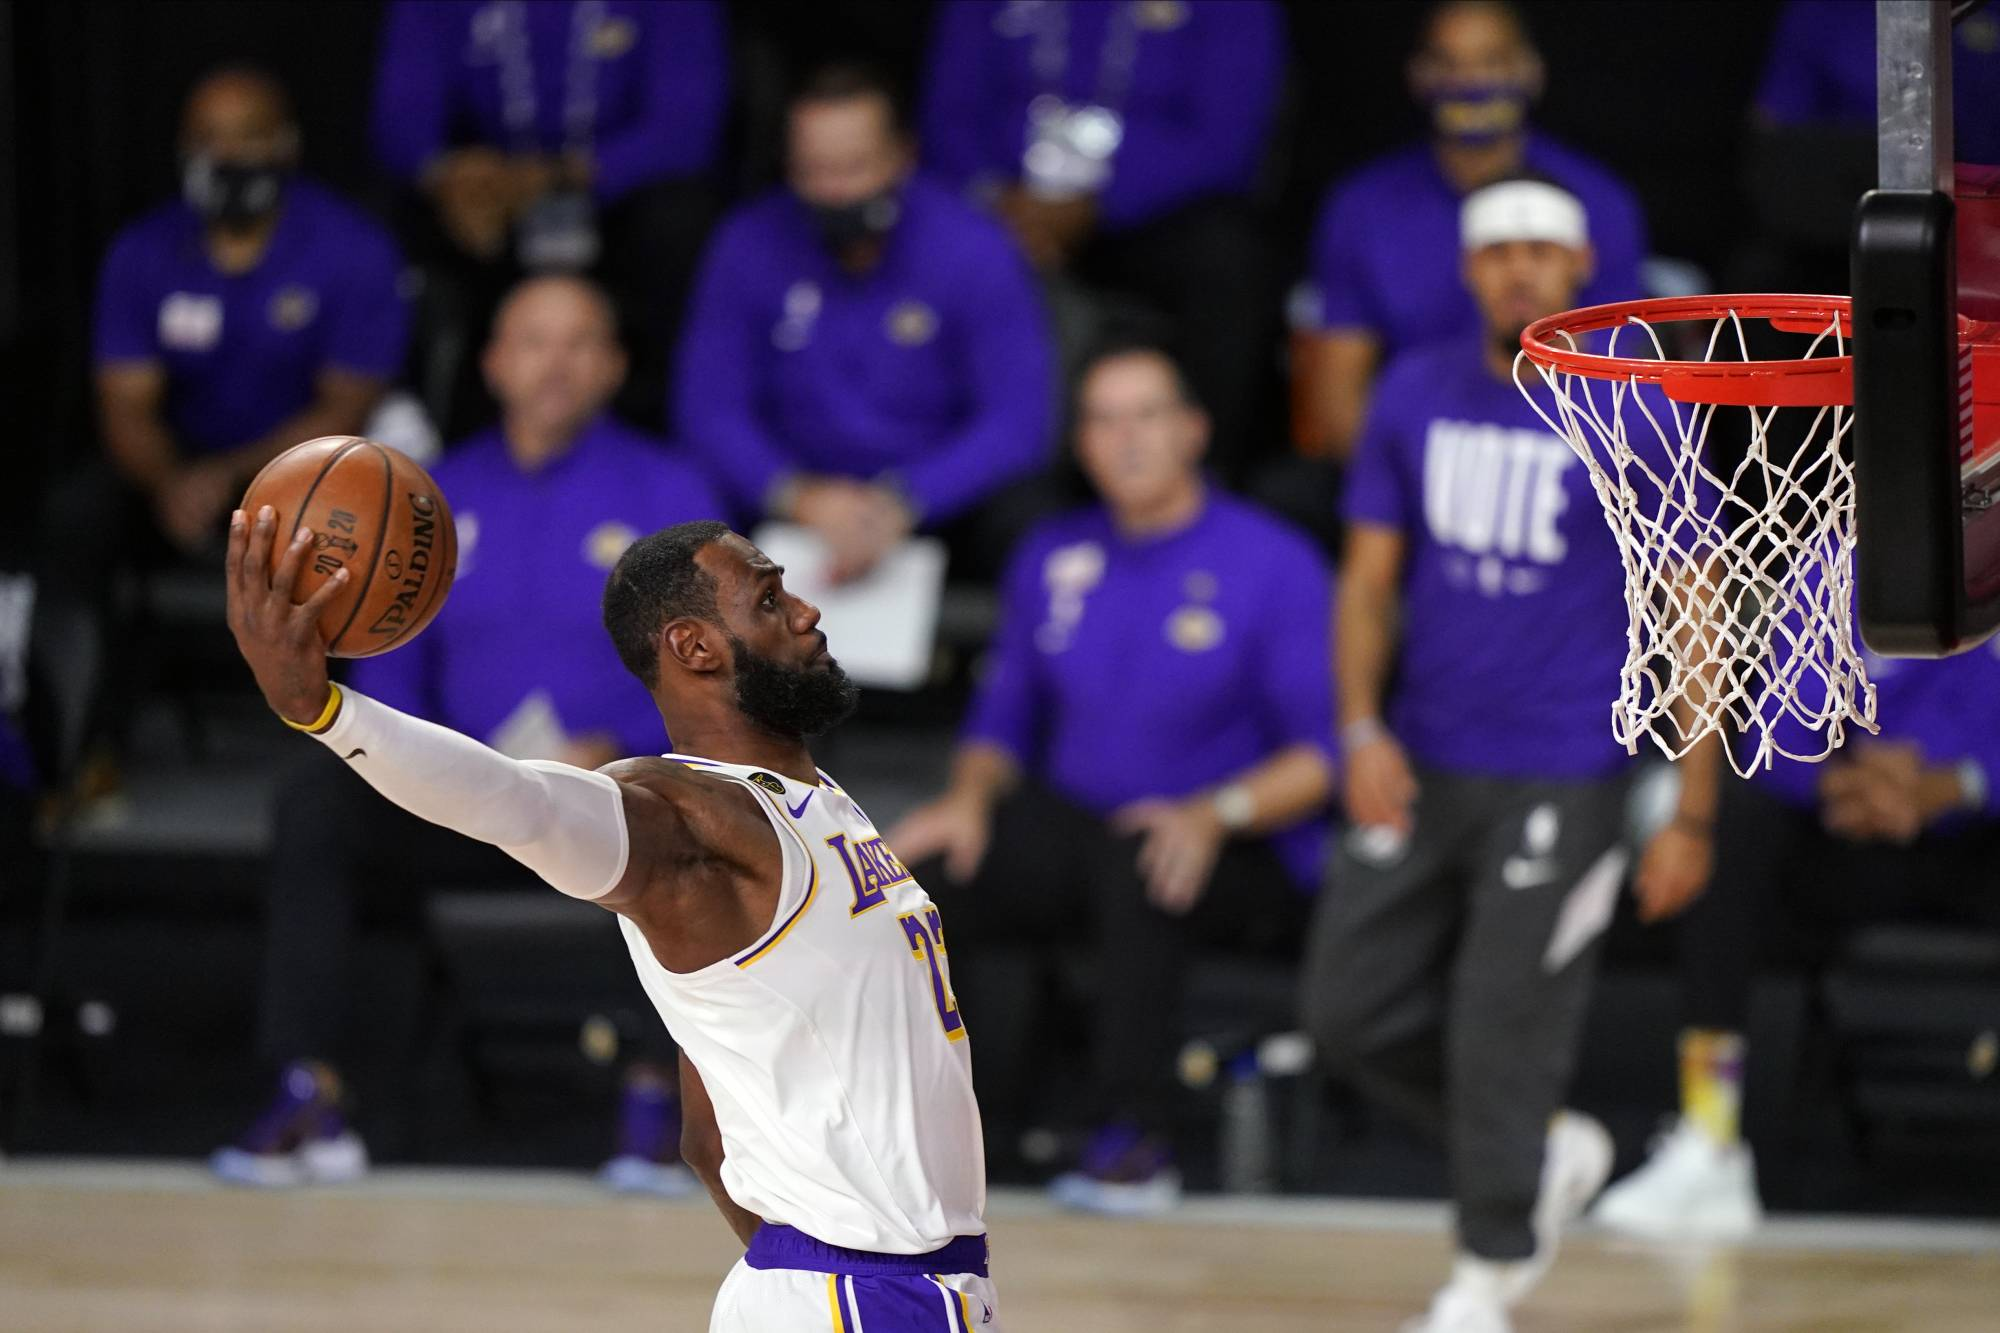 The Lakers' LeBron James dunks during the first half in Game 6 of the NBA Finals in Lake Buena Vista, Florida, on Oct. 11.   AP